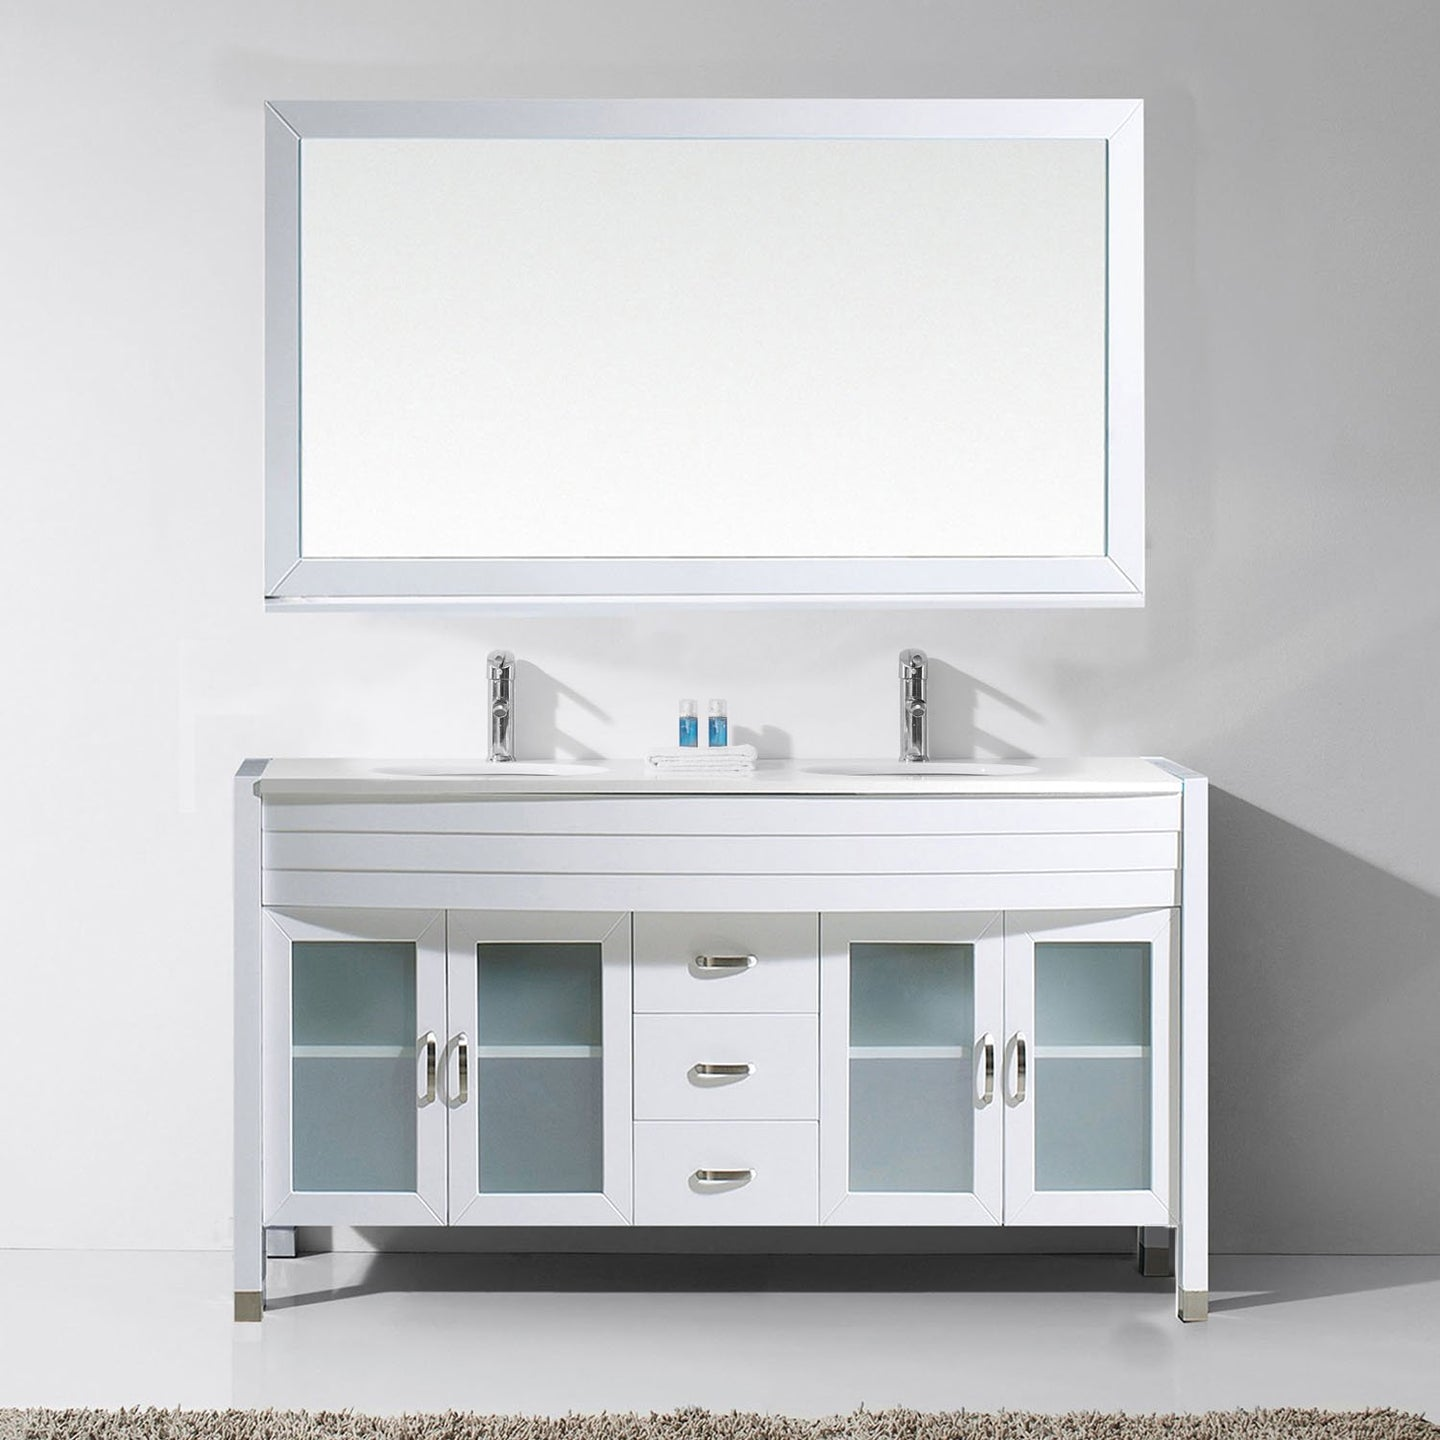 Ava 63″ Double Vanity in White with White Engineered Stone Top Integrated Round Sink and Polished Chrome Faucet with MIrror